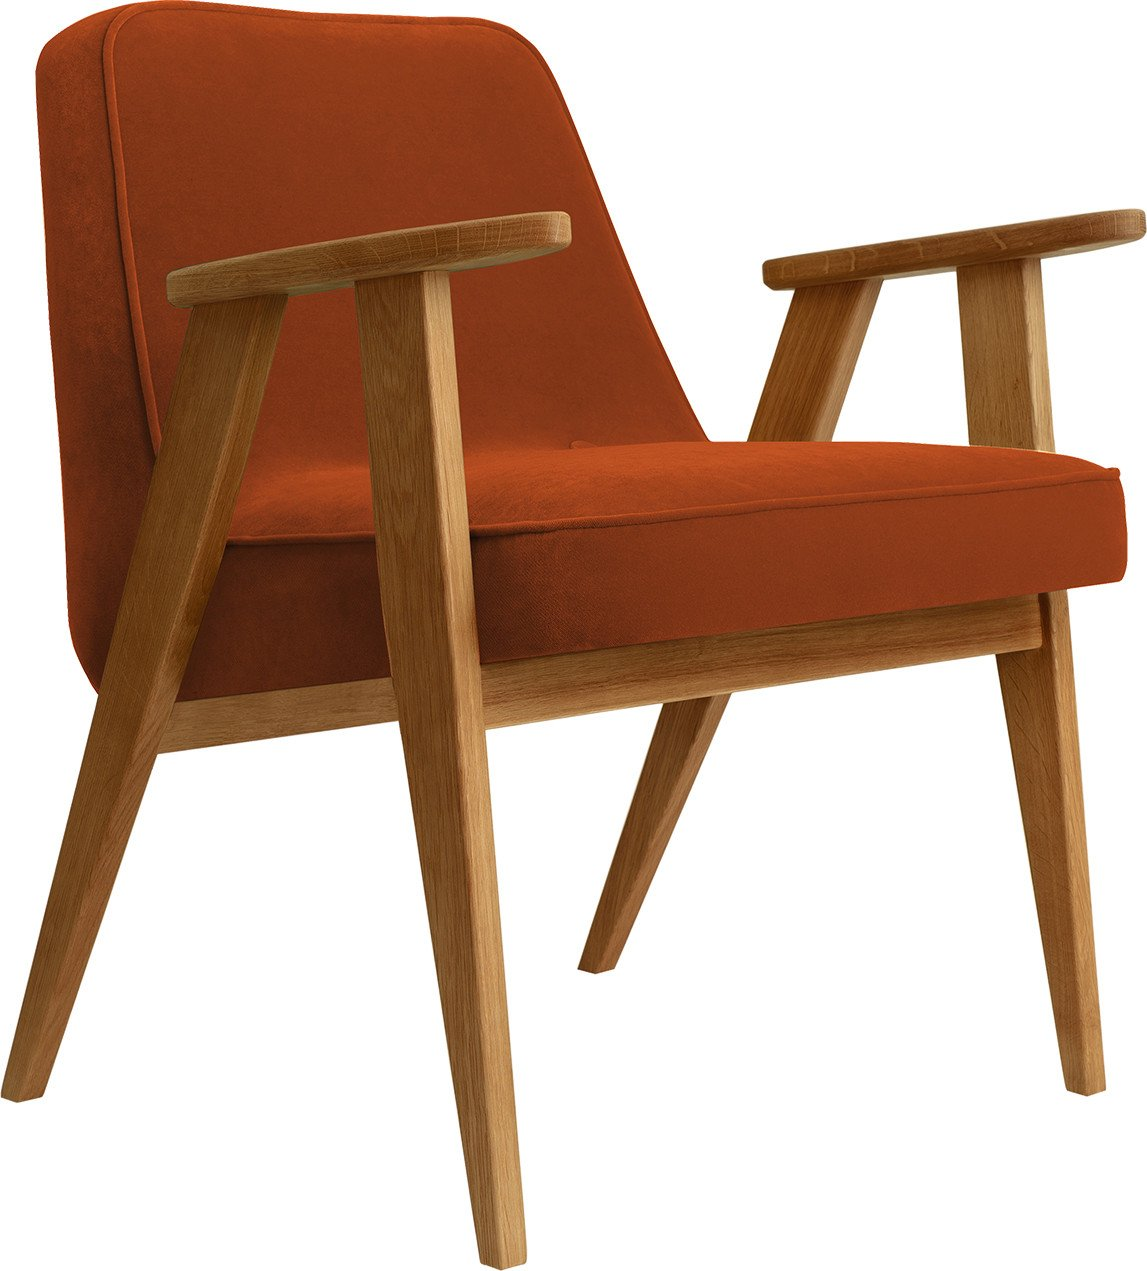 366 Armchair by Józef Chierowski, Red Brick (dark oak)